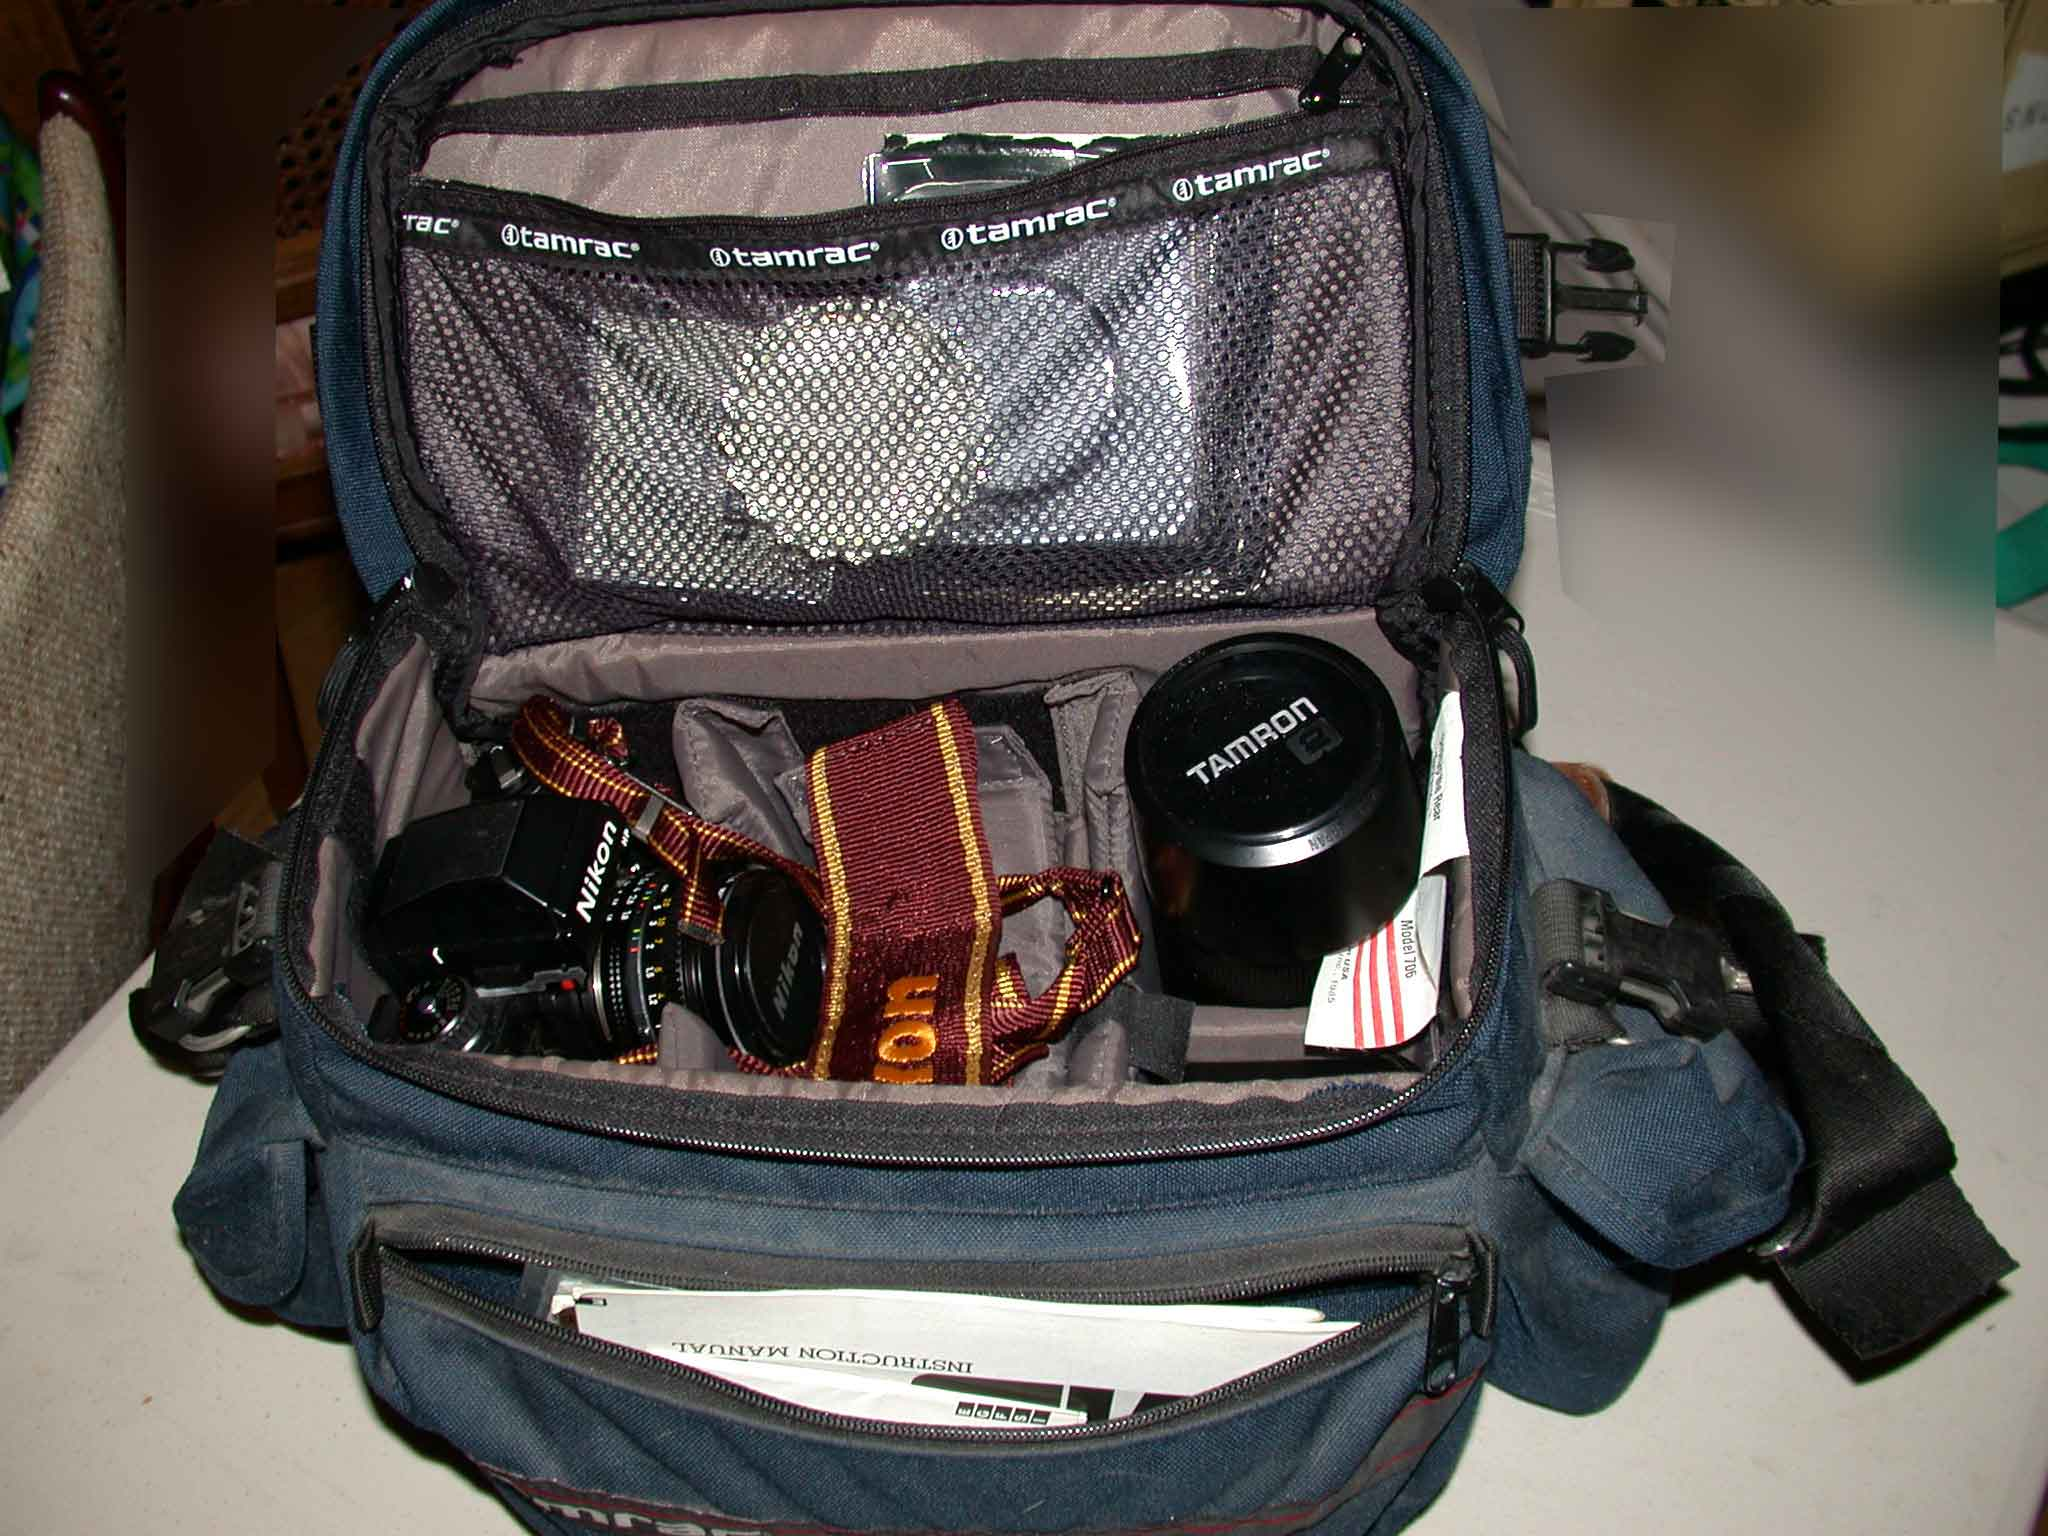 Camera Nikon Camera Bags wendys garage sale and detailed in the other pictures click a picture to see larger view i still have all manuals for camera motor drive lenses